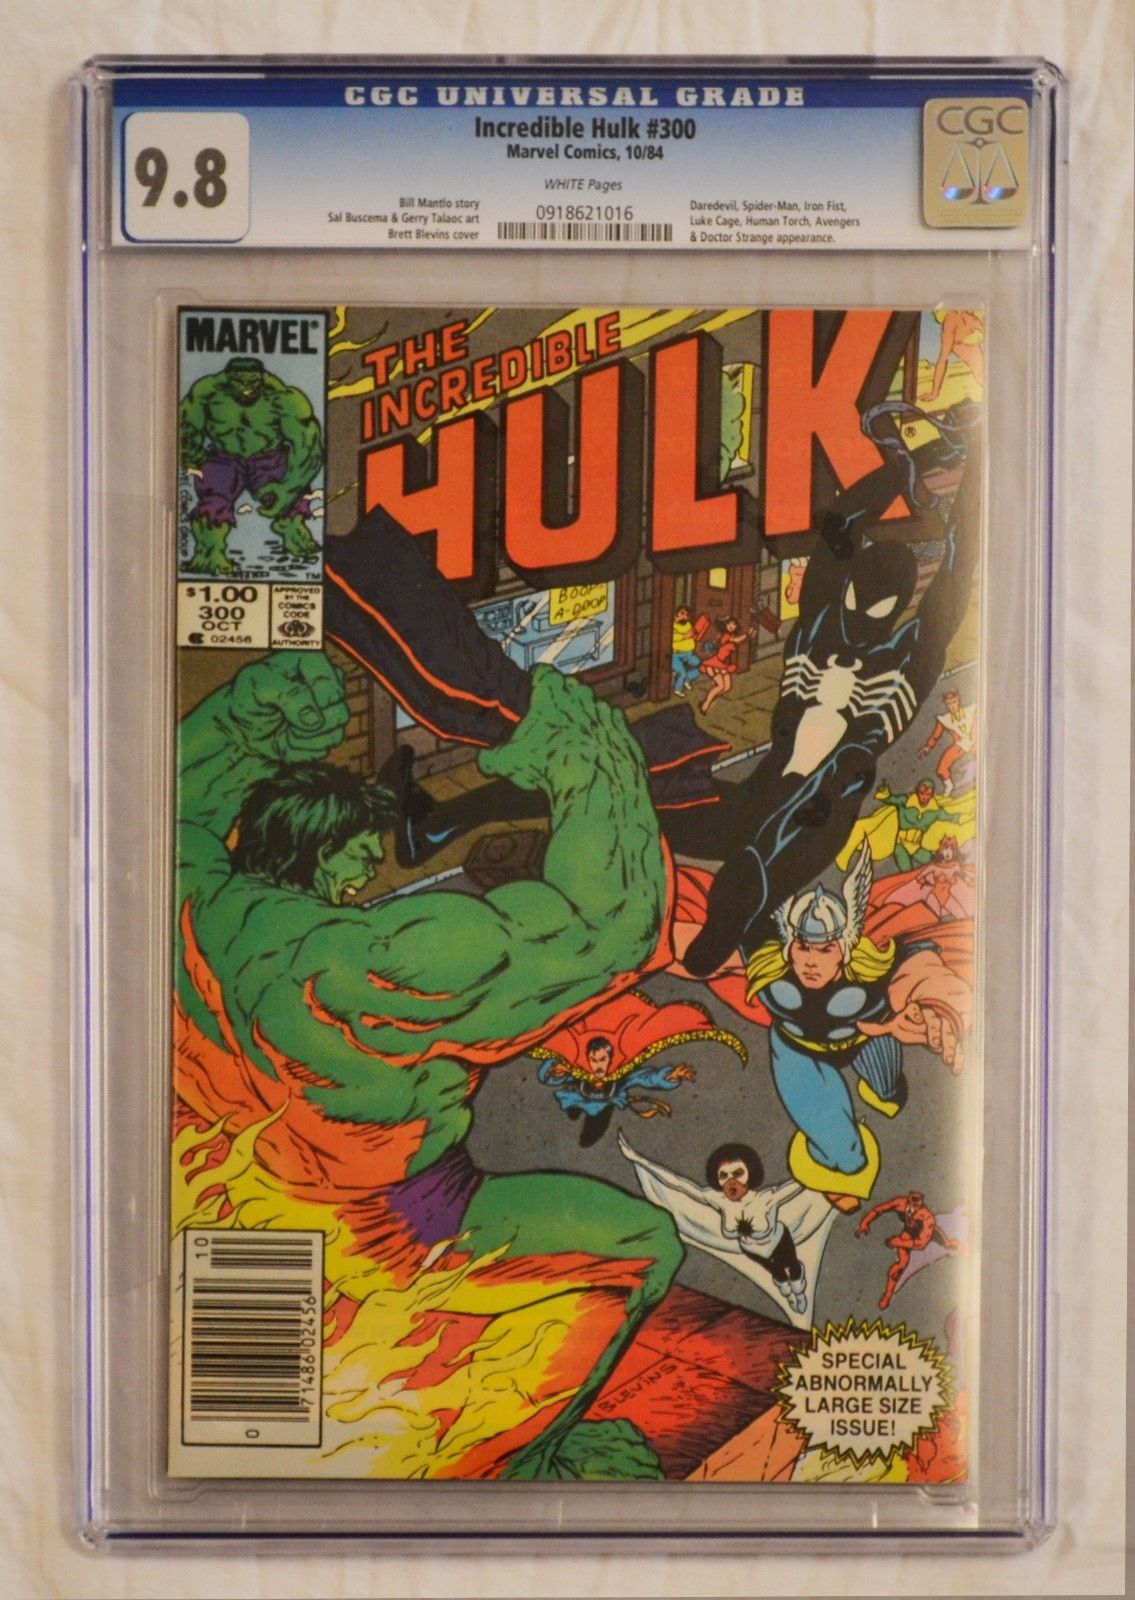 Incredible Hulk #300 CGC 9.8 WP Spider-Man Avengers Daredevil Iron Fist Cage App